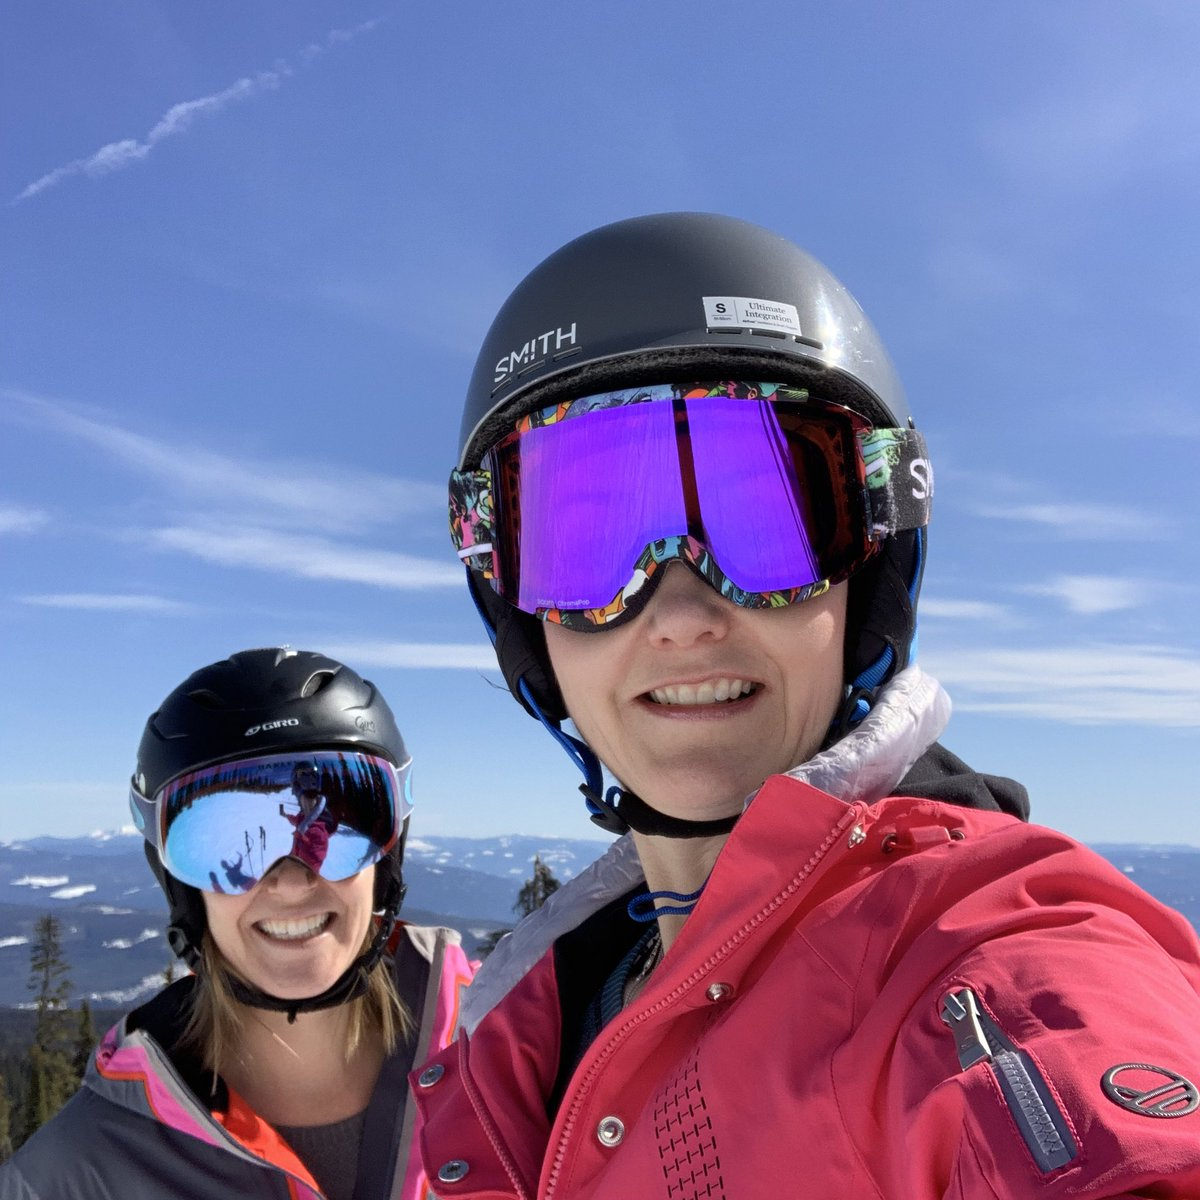 So today I needed to be away when sentencing came down. The past year has been so difficult for all the Broncos families but some closure for me. Miss you everyday Evan. #Thomas17Skiing to escape with my beautiful friend #skiing #silverstar #believe #healing<br>http://pic.twitter.com/iBXK4T2XSl